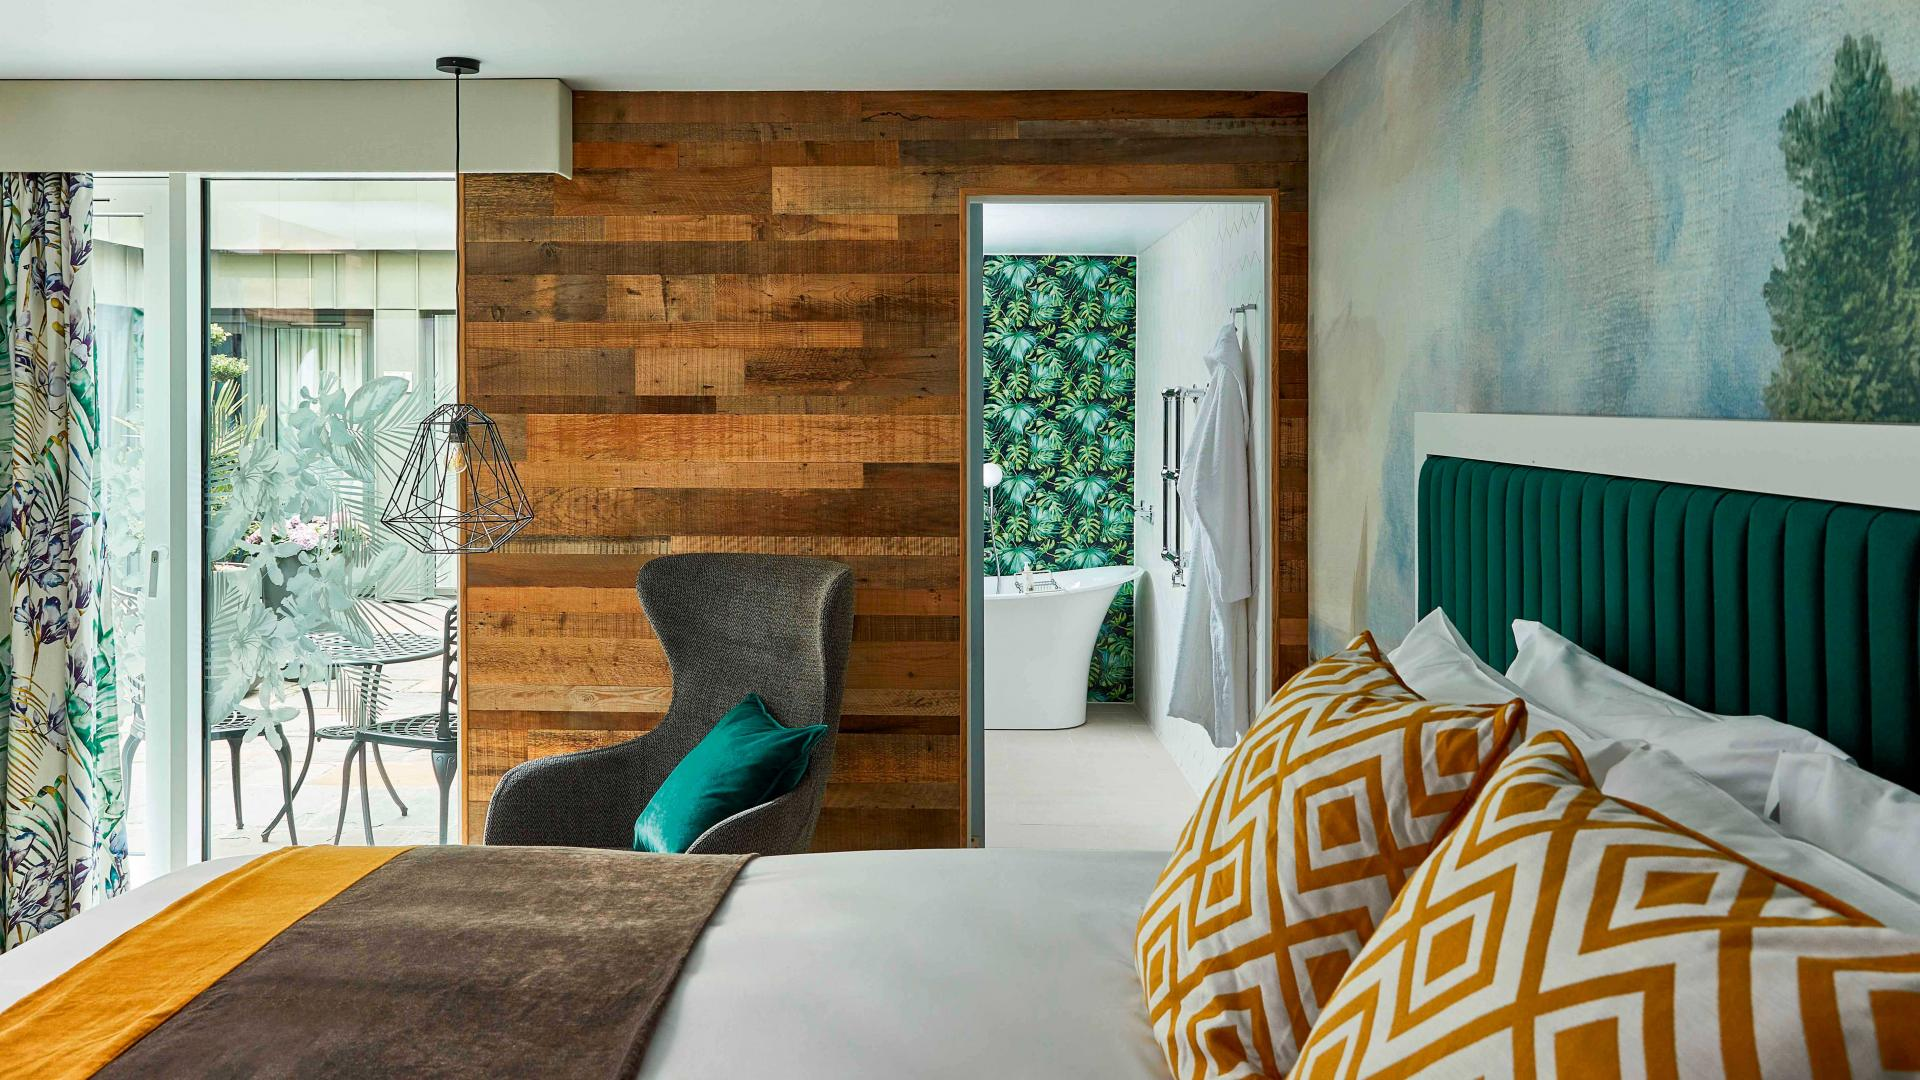 Hotel Indigo Bath review: one of the hotel rooms